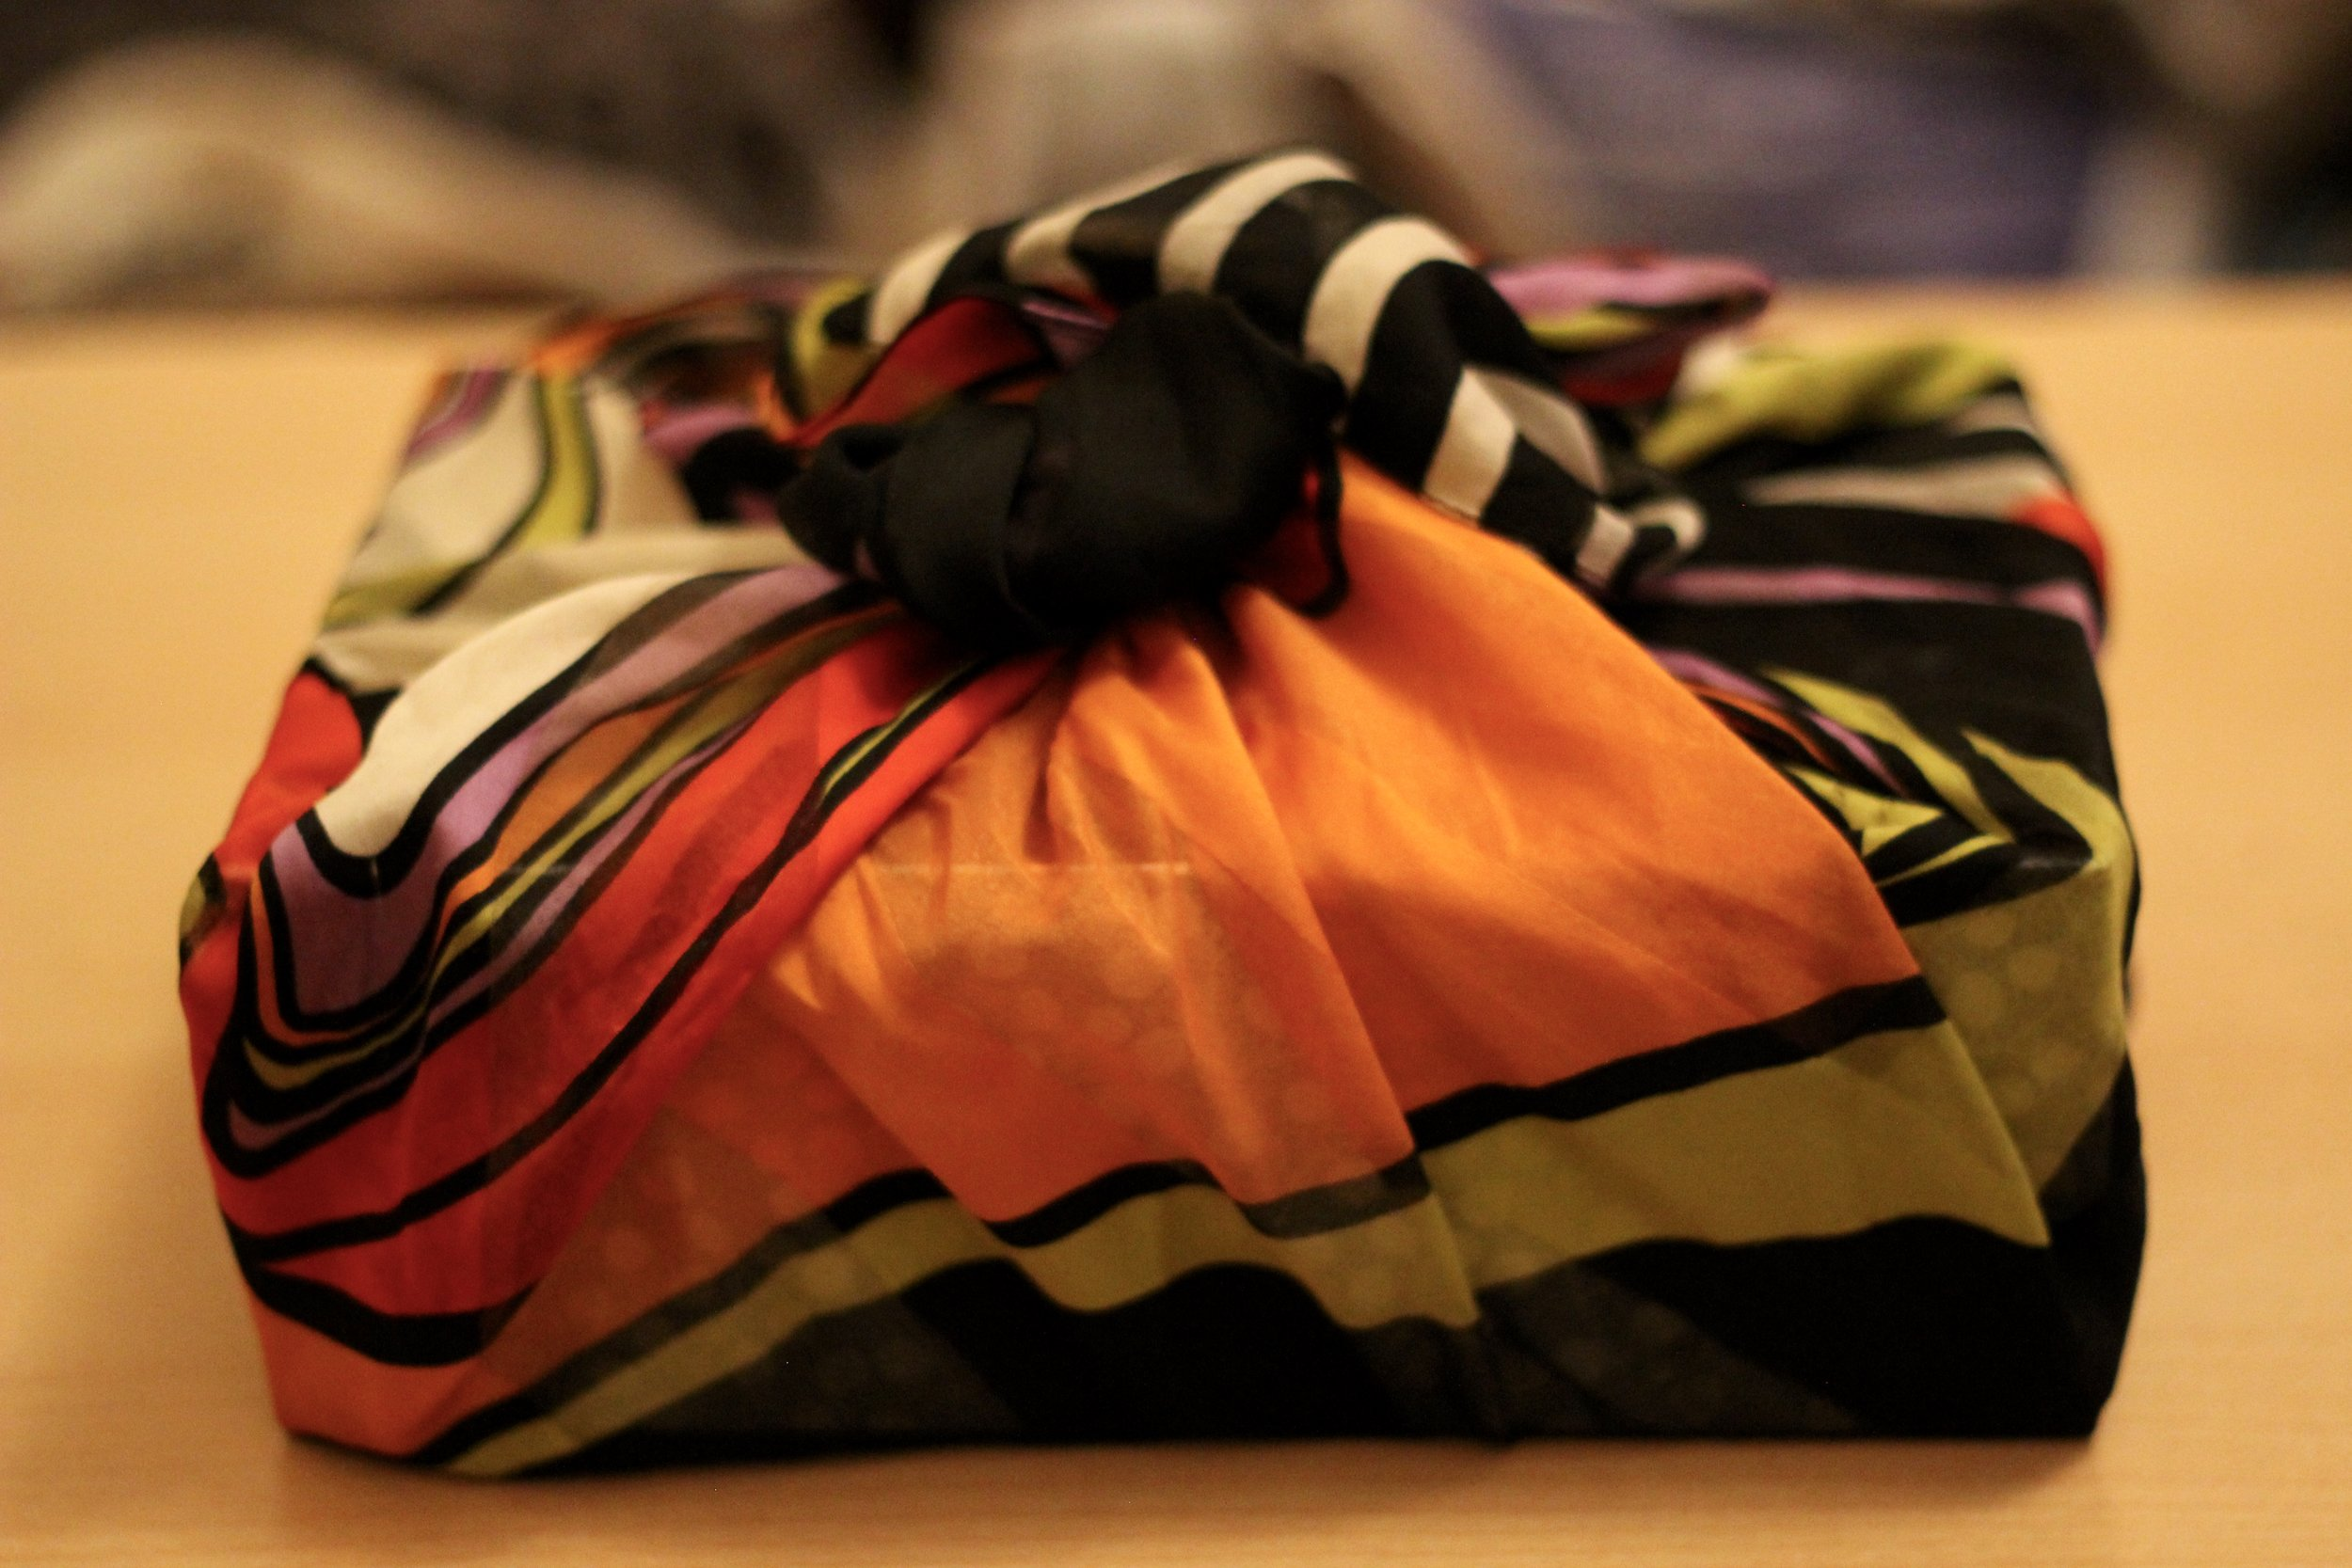 Wrapping presents up in a vintage/thrifted scarf is a great double gifting idea